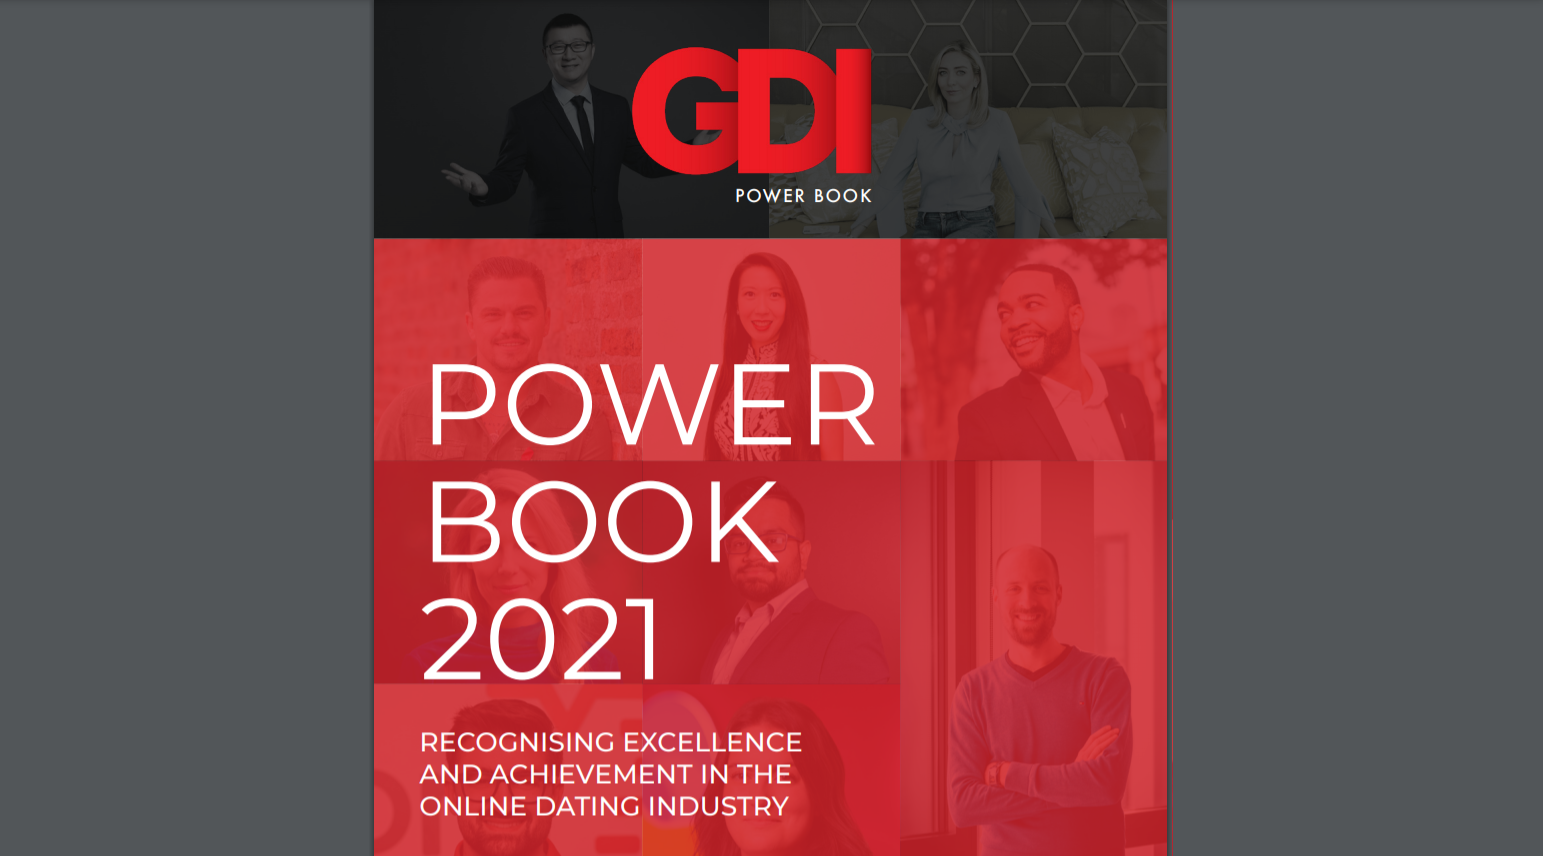 Global Dating Insights Publishes Seventh Annual Power Book!